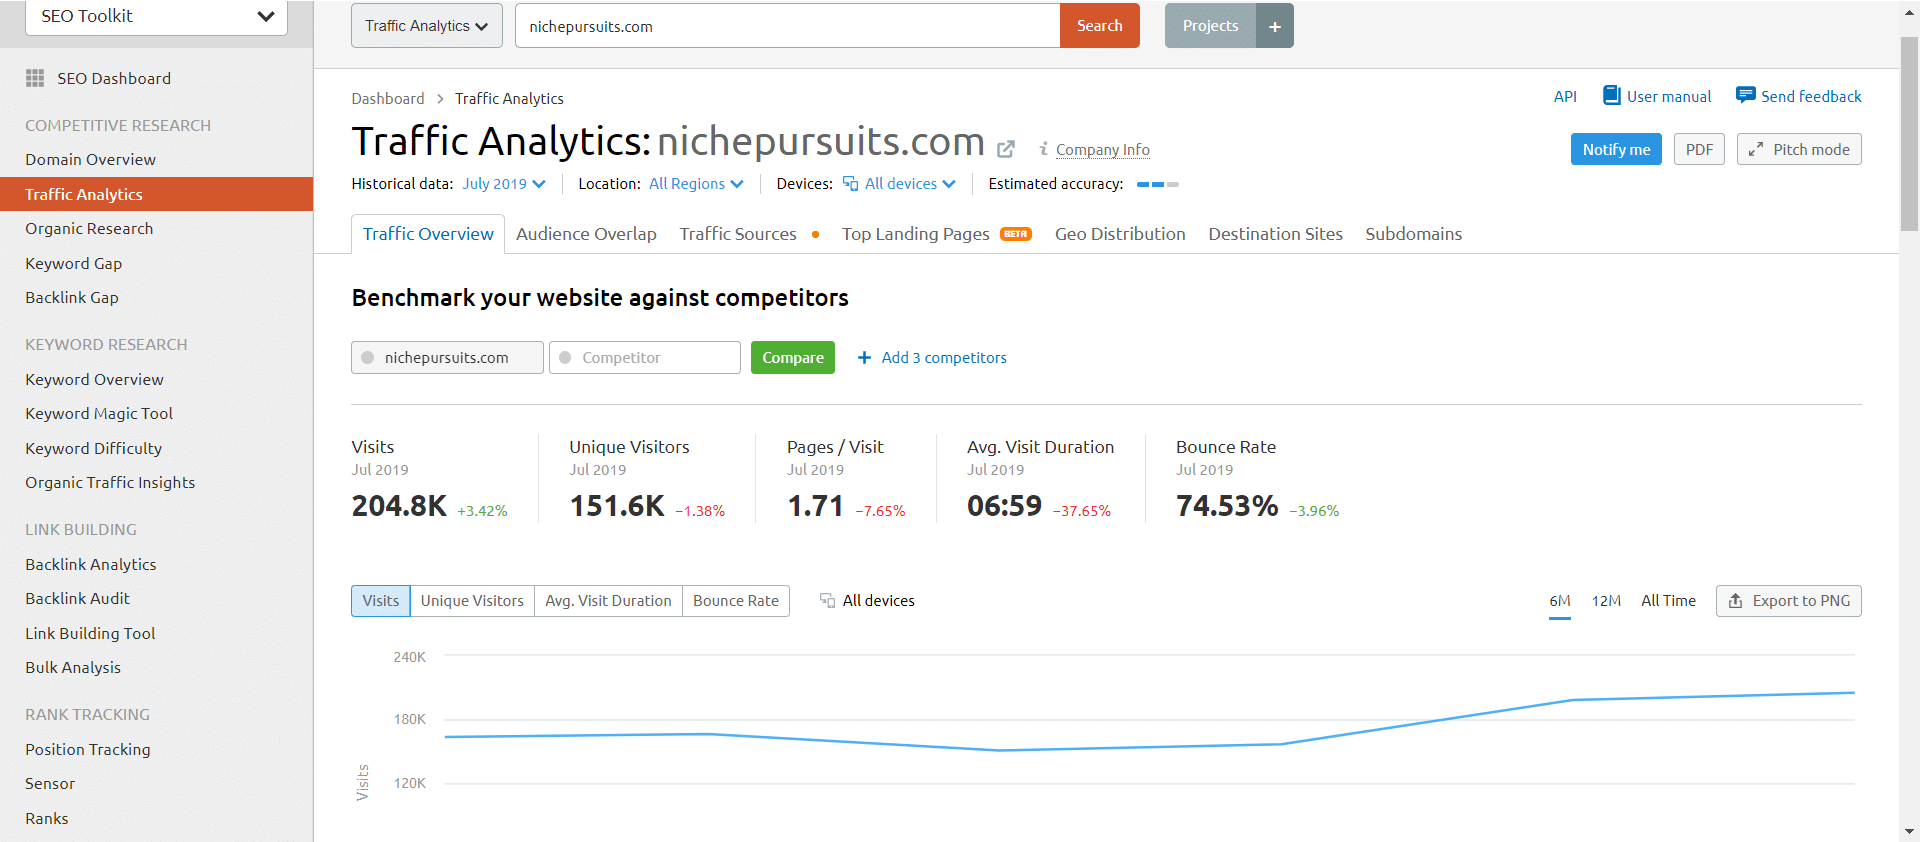 traffic analytics for niche pursuits